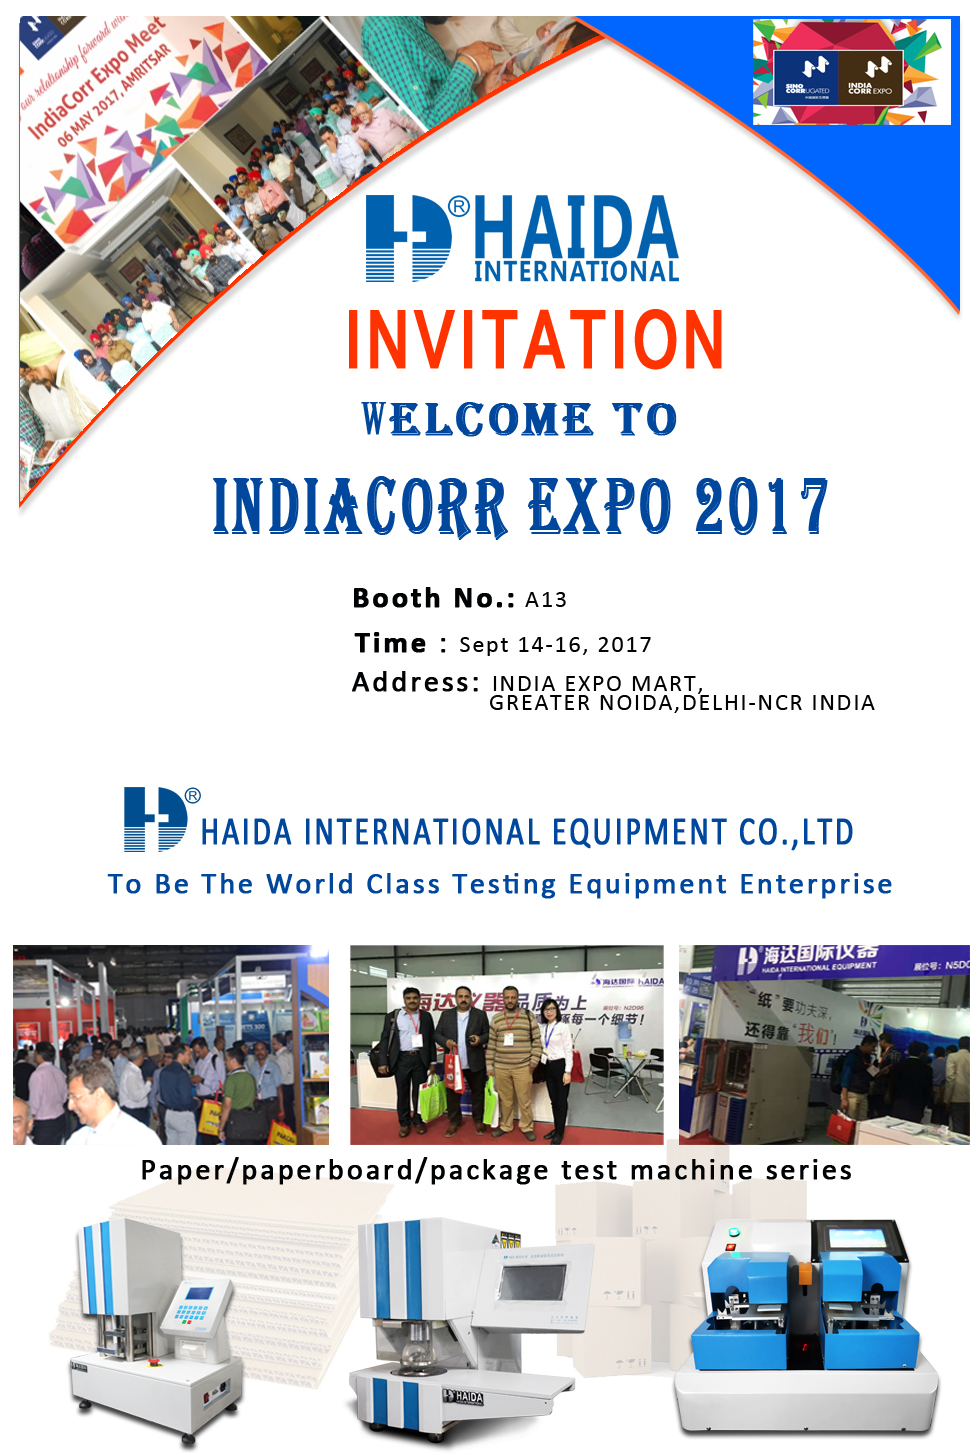 Welcome to Haida booth in IndiaCorr Expo 2017 Exhibitions